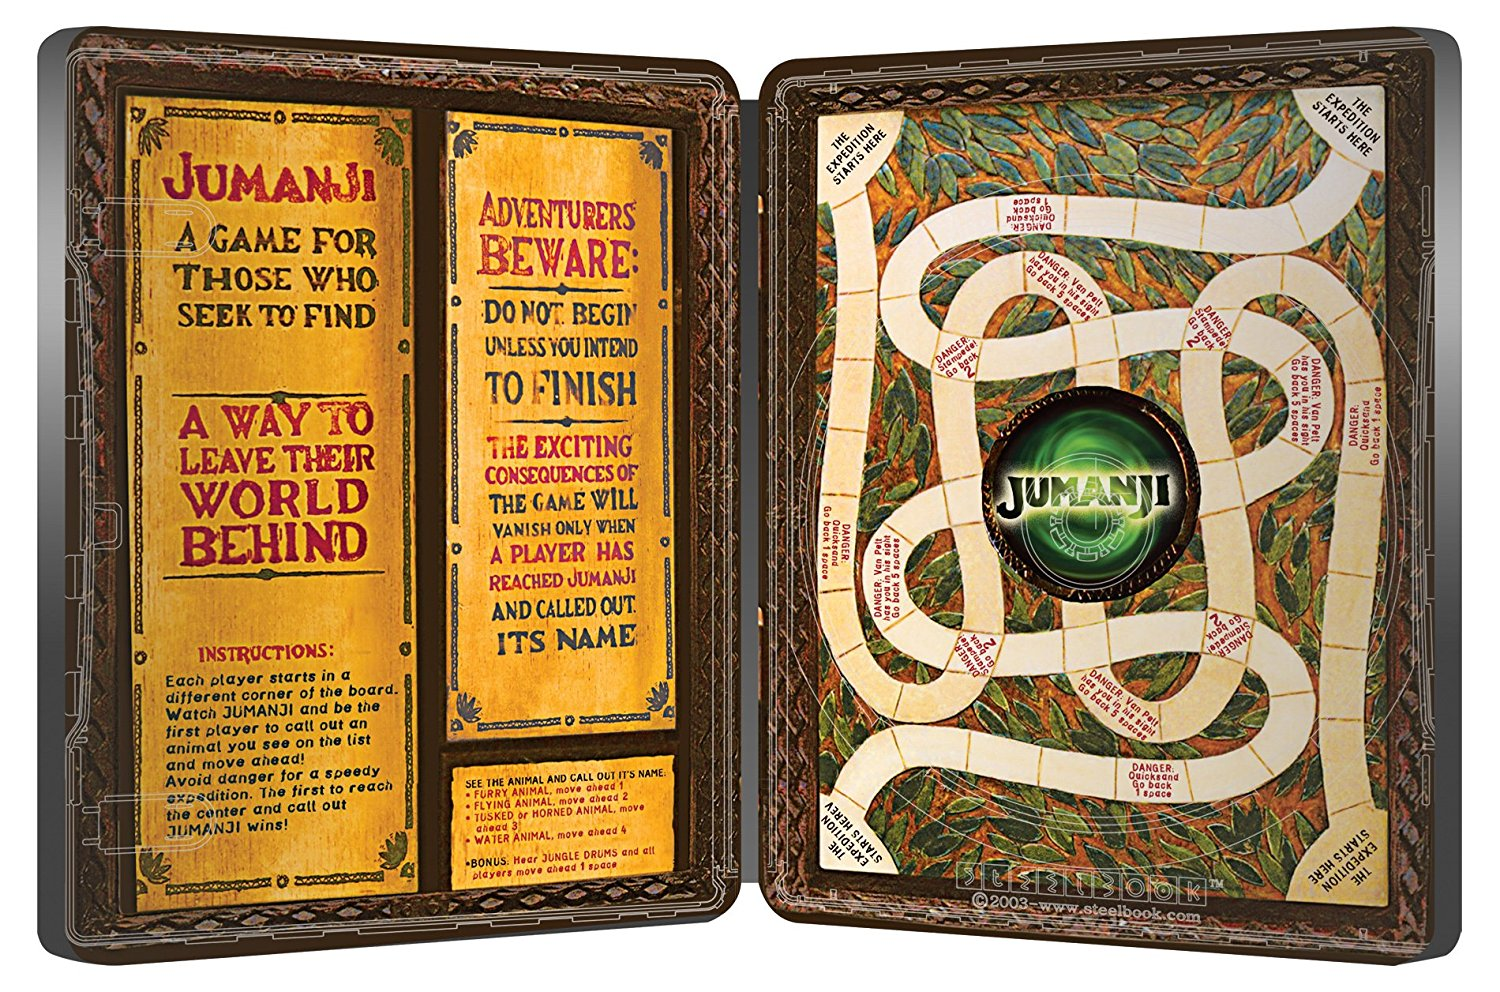 jumanji board game instructions